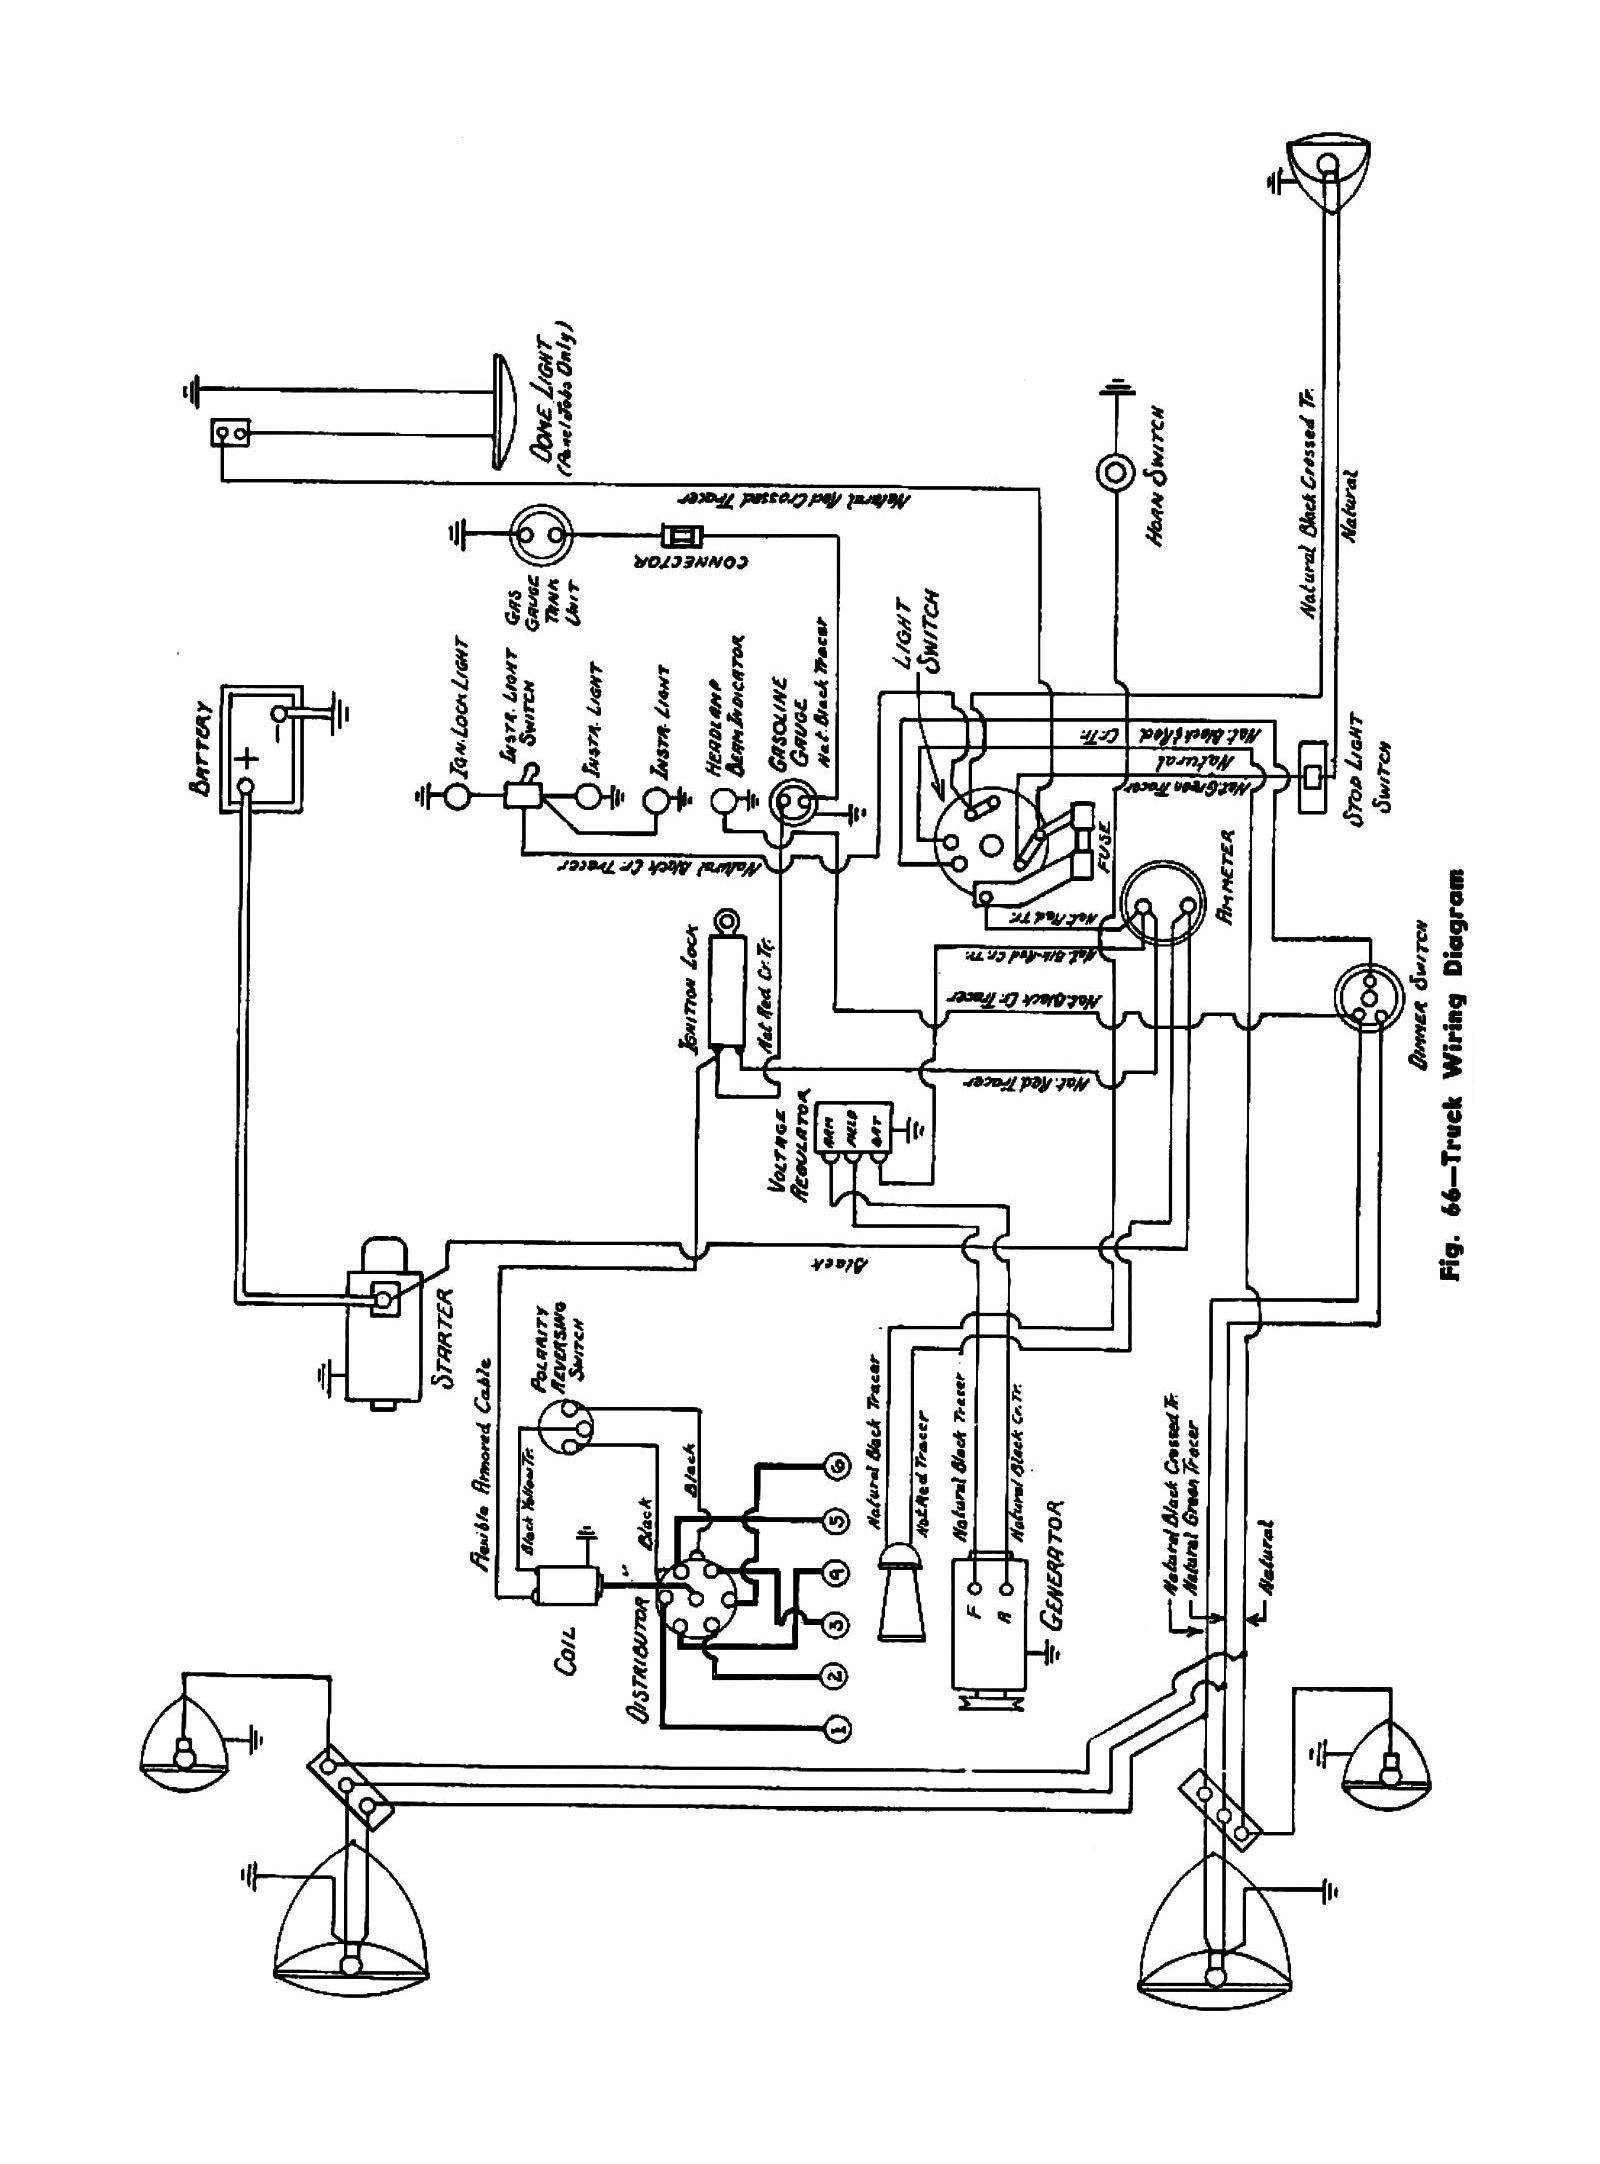 1954 chevy headlight switch wiring wiring diagram library Universal Headlight Switch wiring diagram for 1953 chevy pickup truck wiring diagram library 1966 chevrolet headlight switch wiring 1954 chevy headlight switch wiring